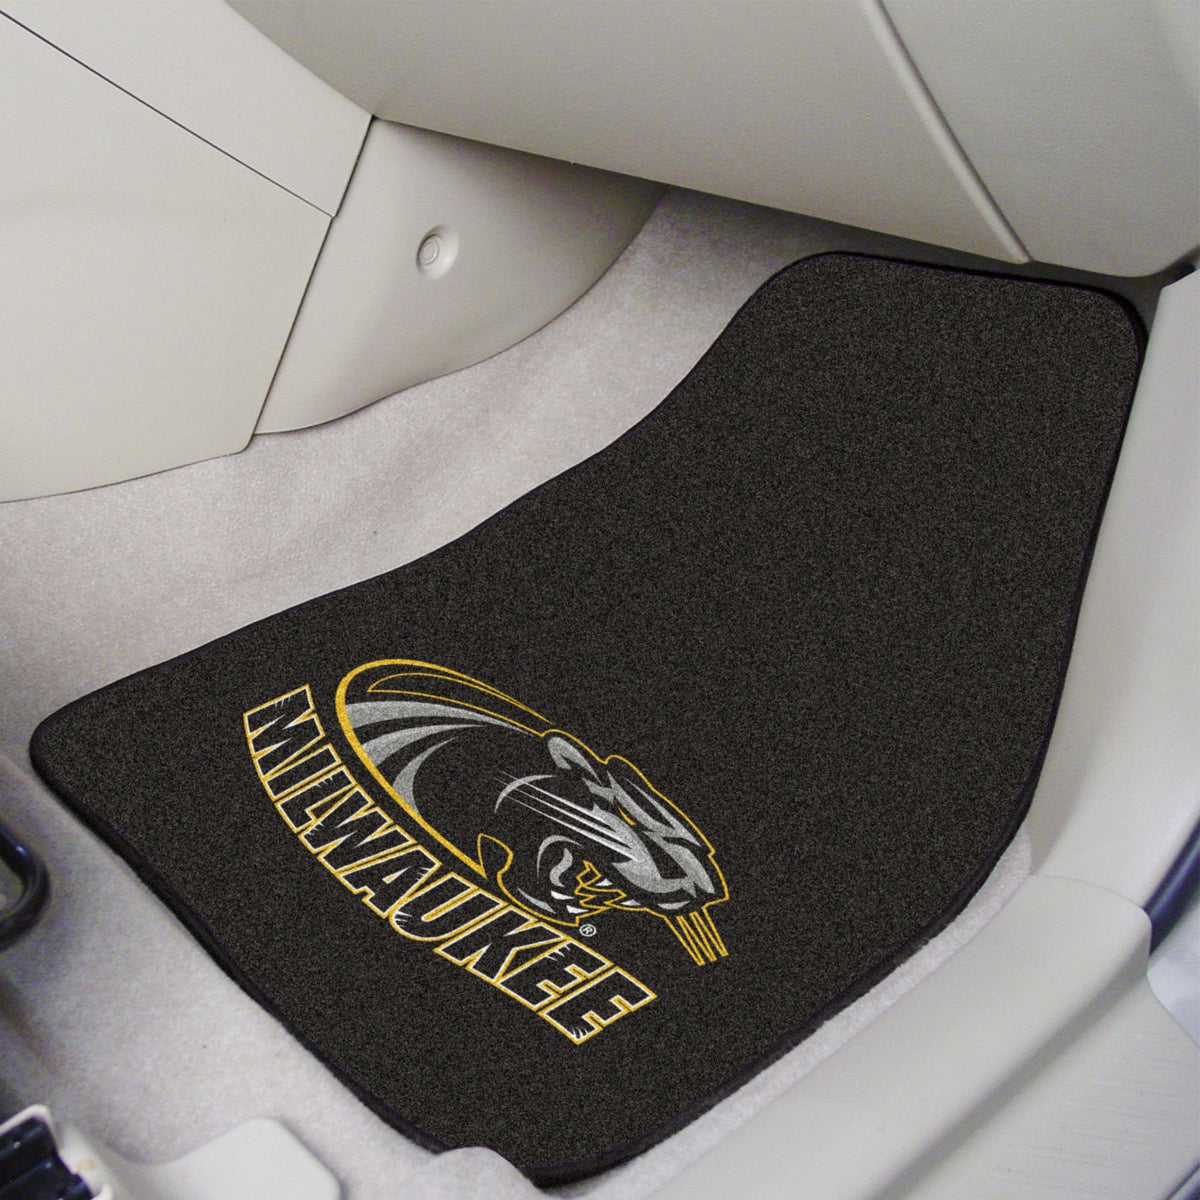 Collegiate - Carpet Car Mat, 2-Piece Set: T - Z Collegiate Car Mat, Front Car Mats, 2-pc Carpet Car Mat Set, Collegiate, Auto Fan Mats Wisconsin-Milwaukee